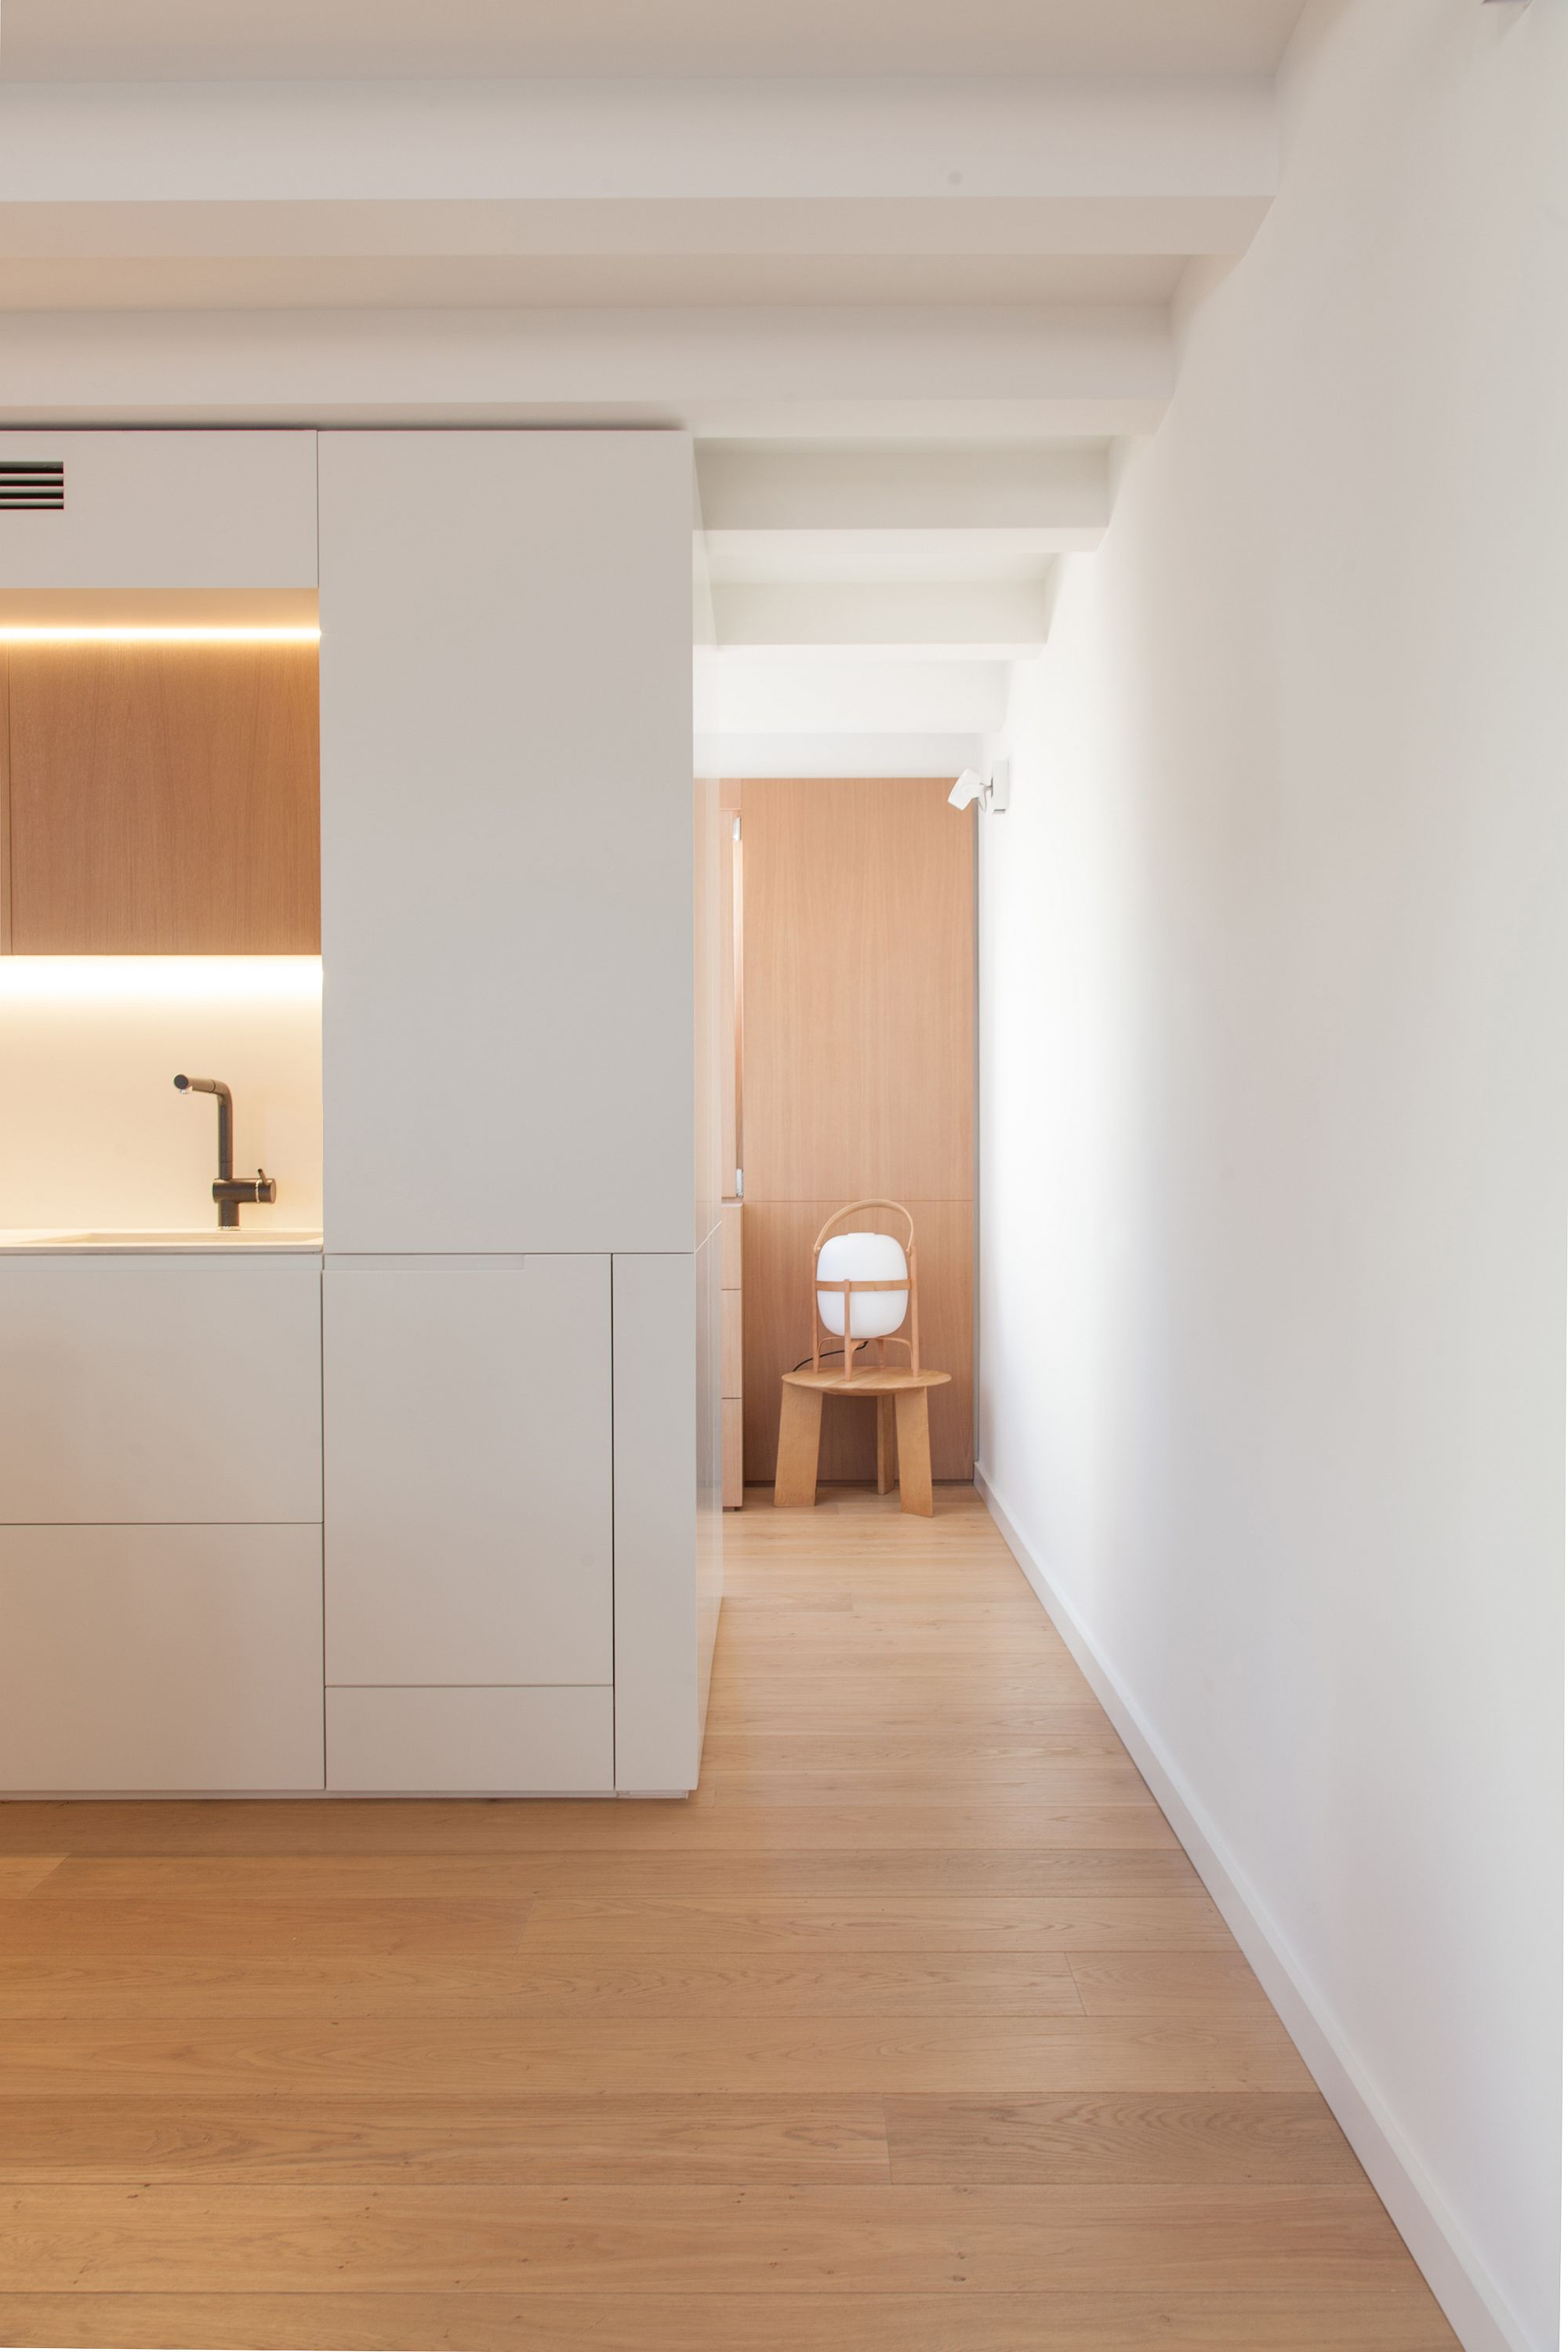 Hidden behind the custom units are cabinets that serve different functions